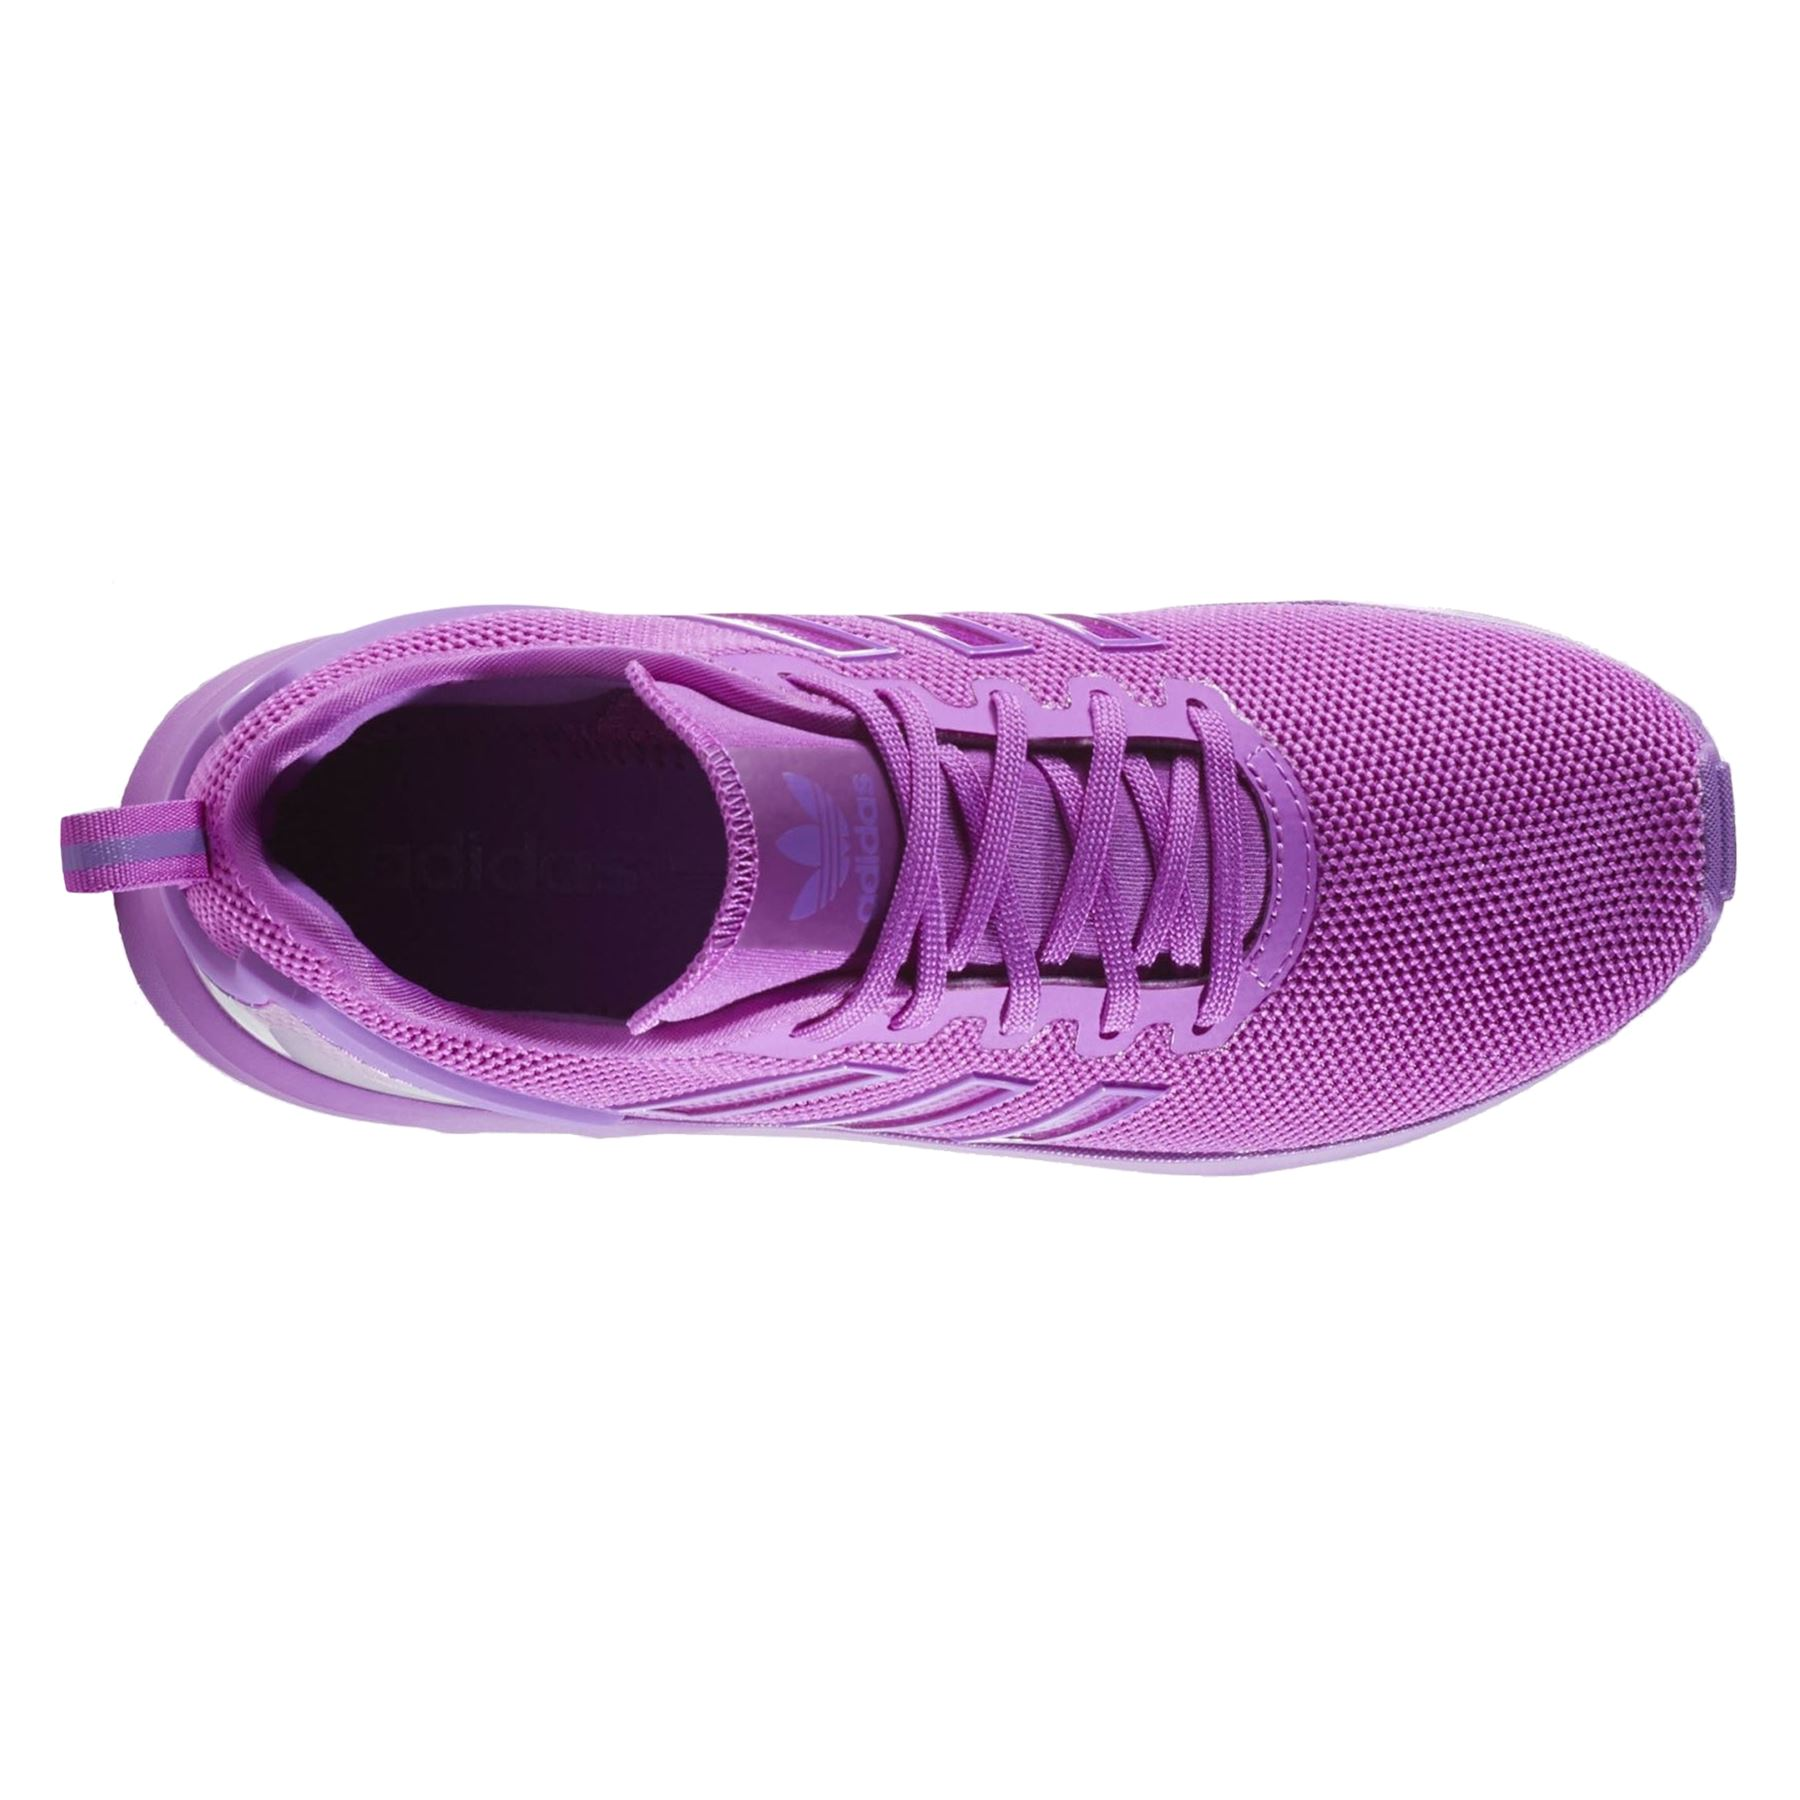 Details about adidas ORIGINALS JUNIOR ZX FLUX ADV TRAINERS PURPLE 3 3.5 4 4.5 5 5.5 WOMEN'S